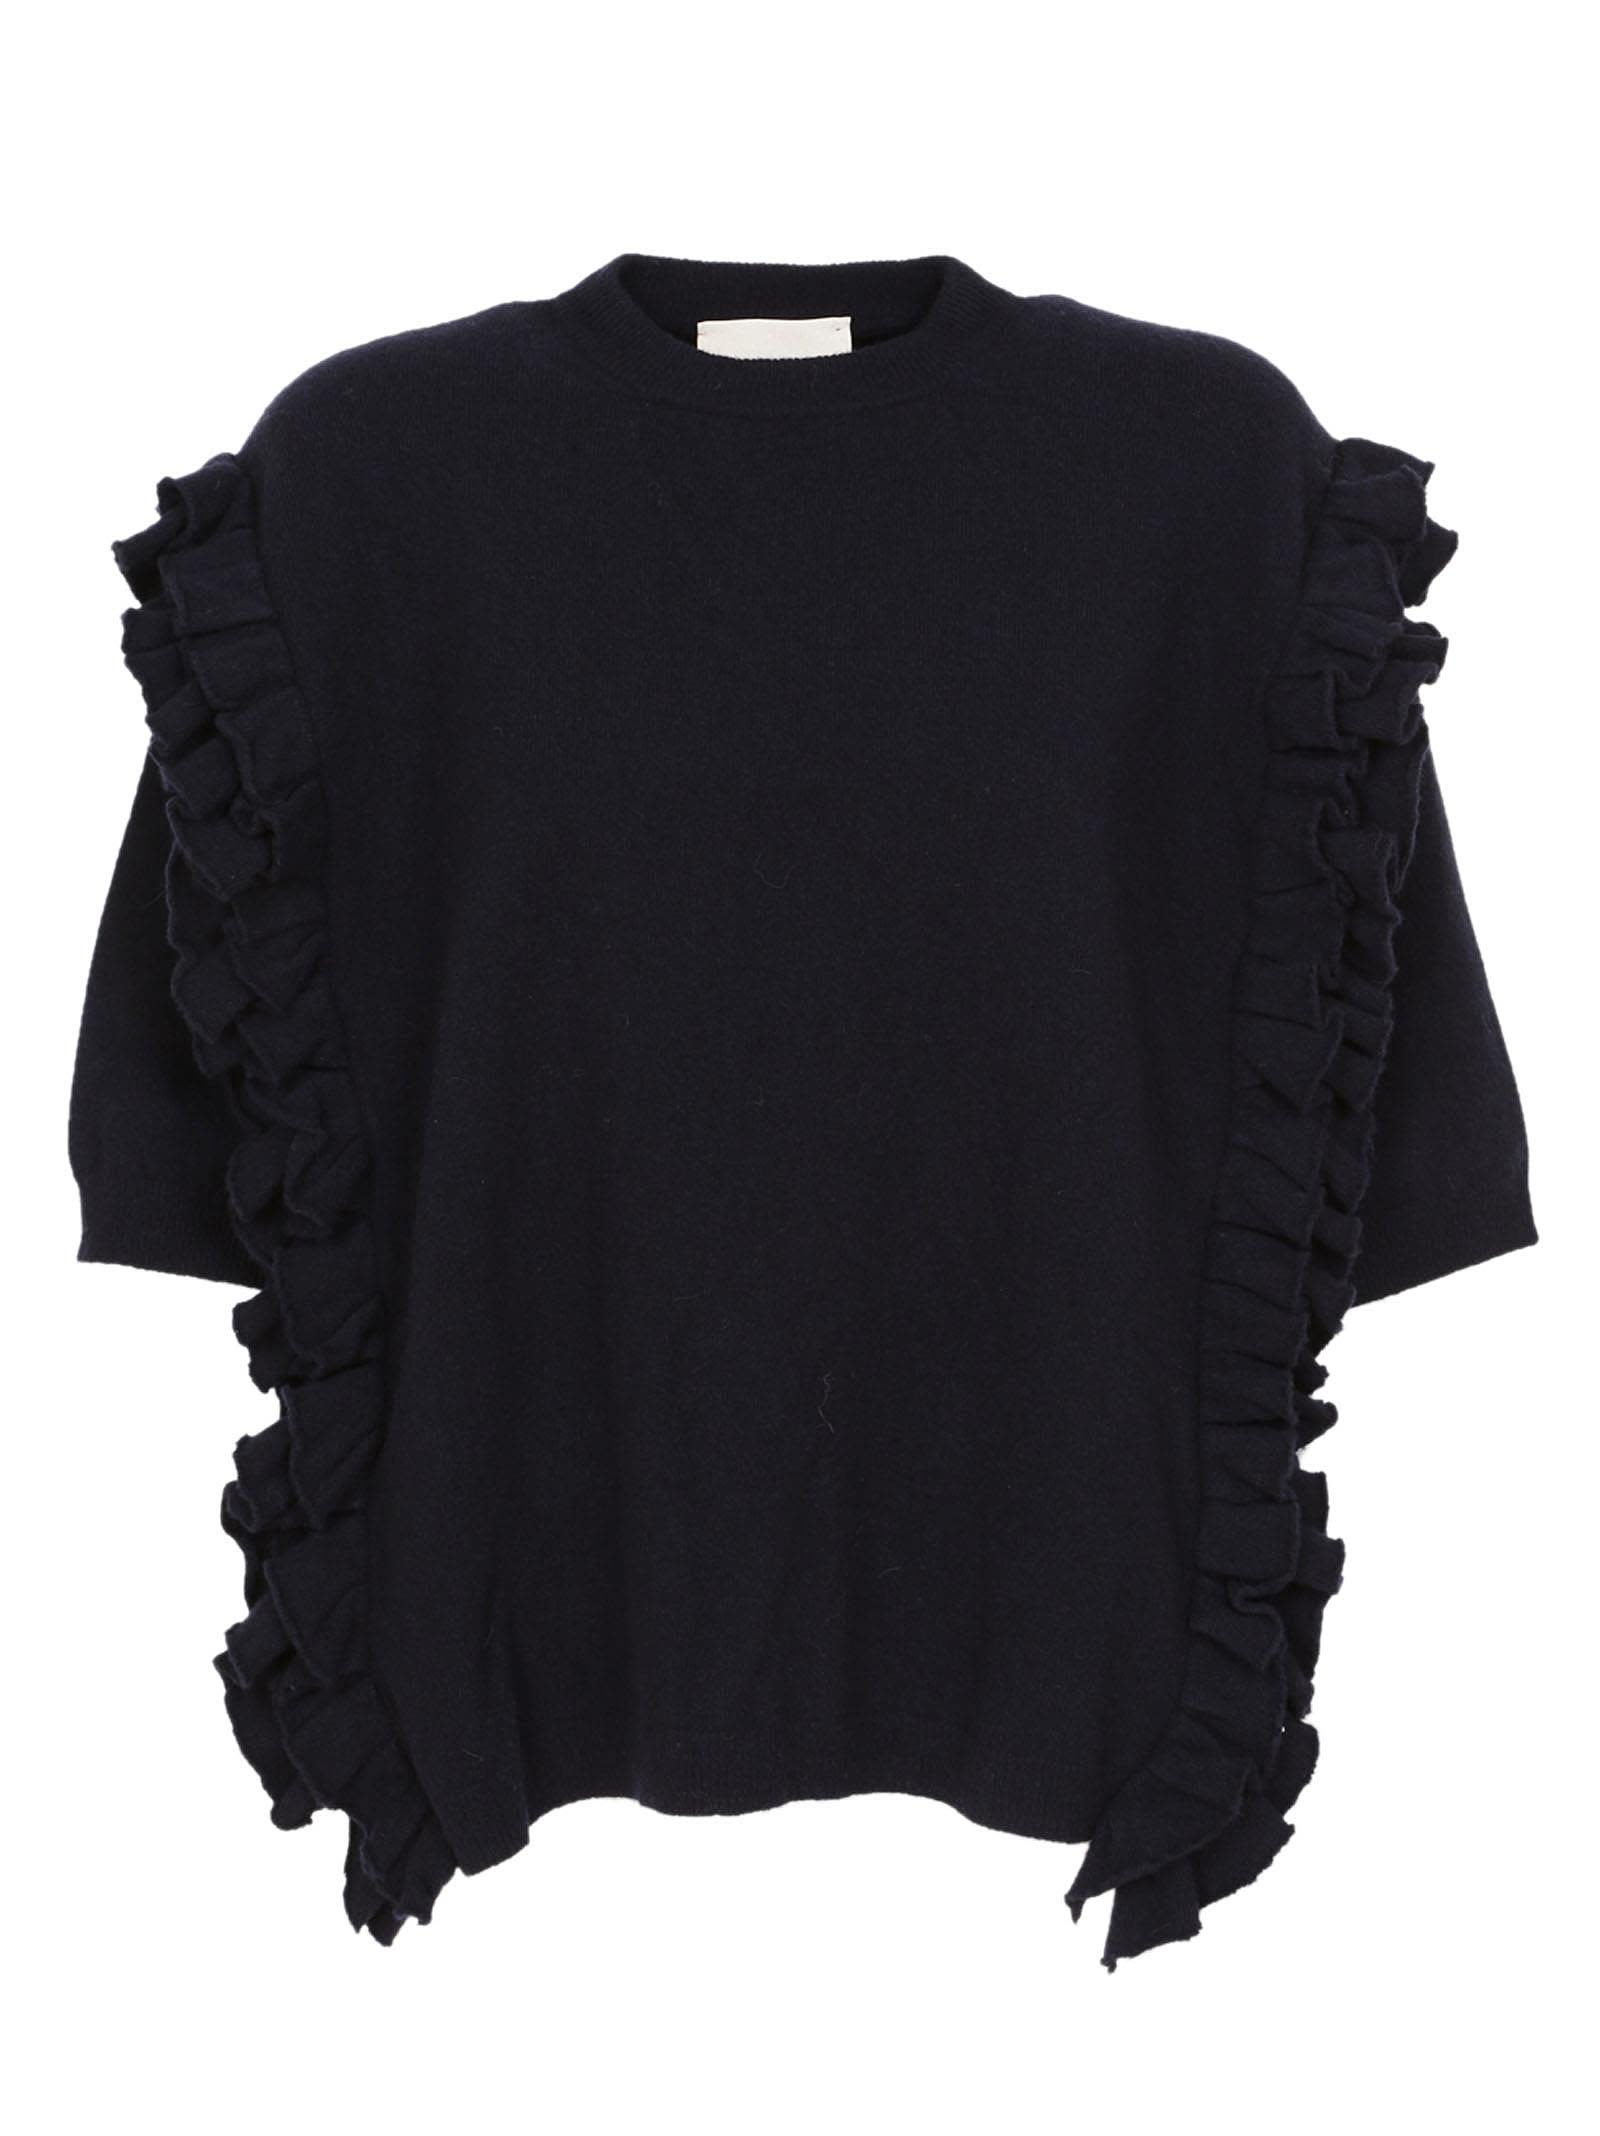 Erika Cavallini Frill Detail Short Sleeved Sweater